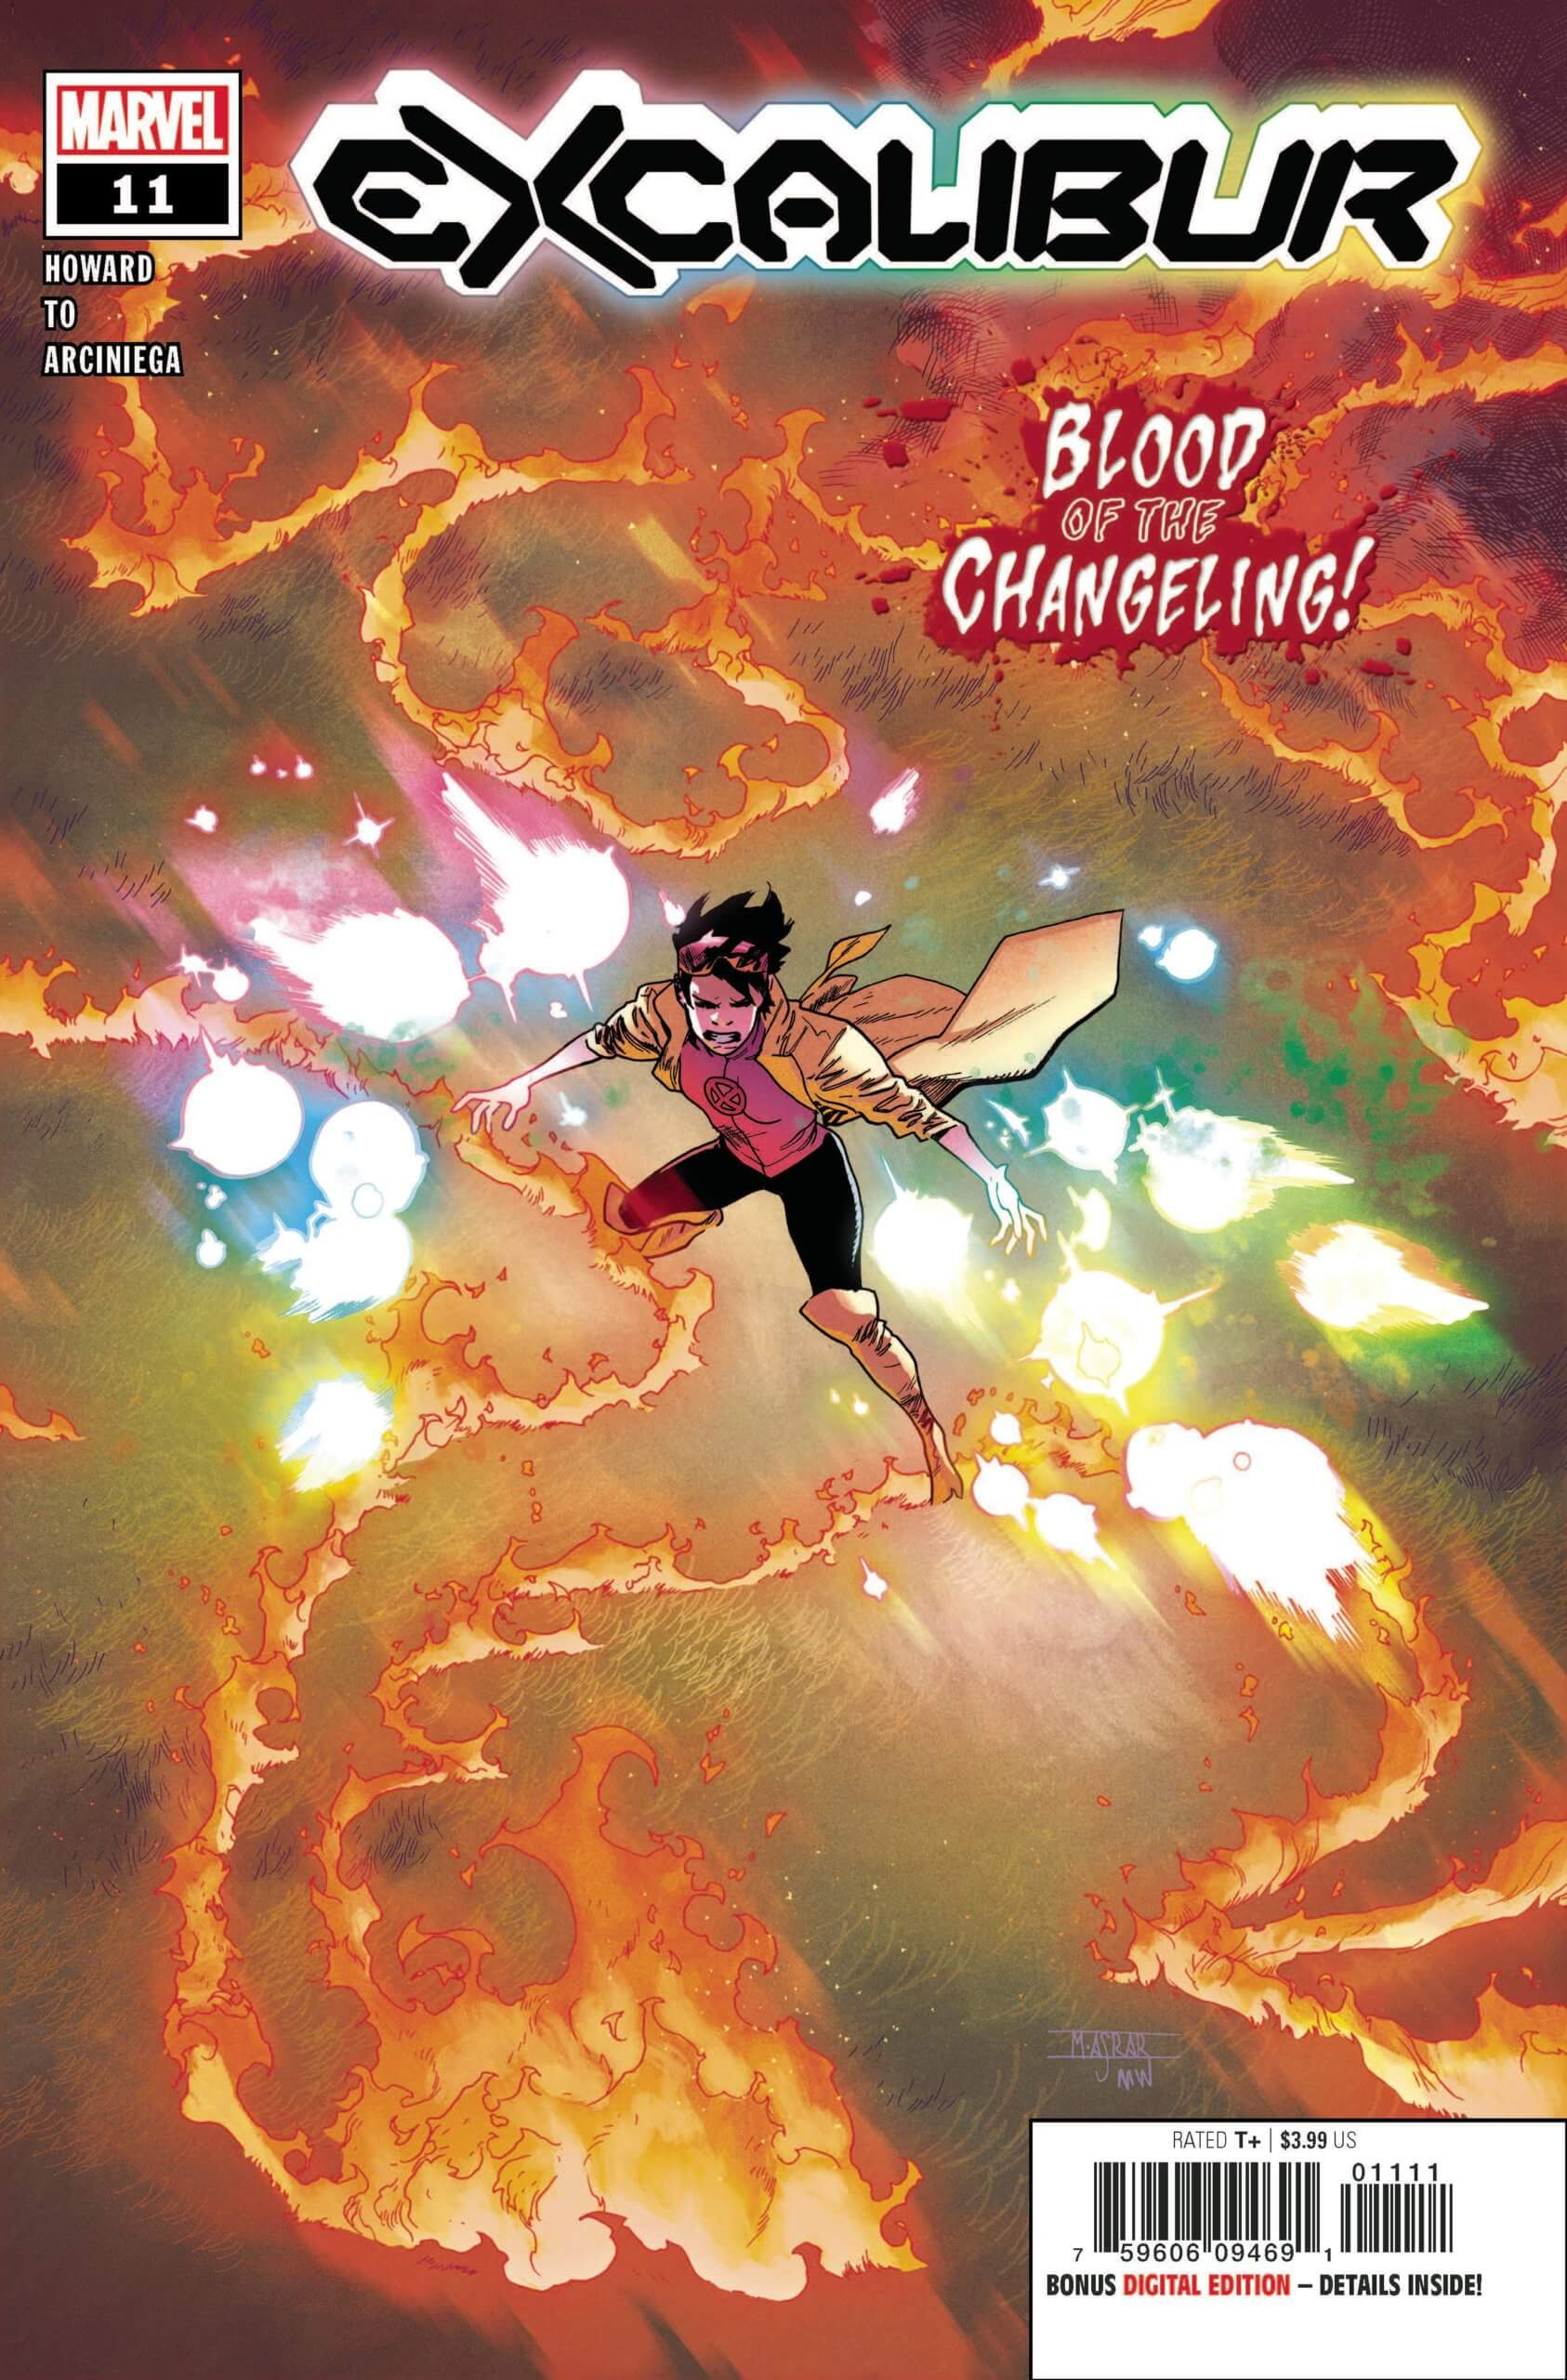 Excalibur #11 cover with Jubilee blowing things up